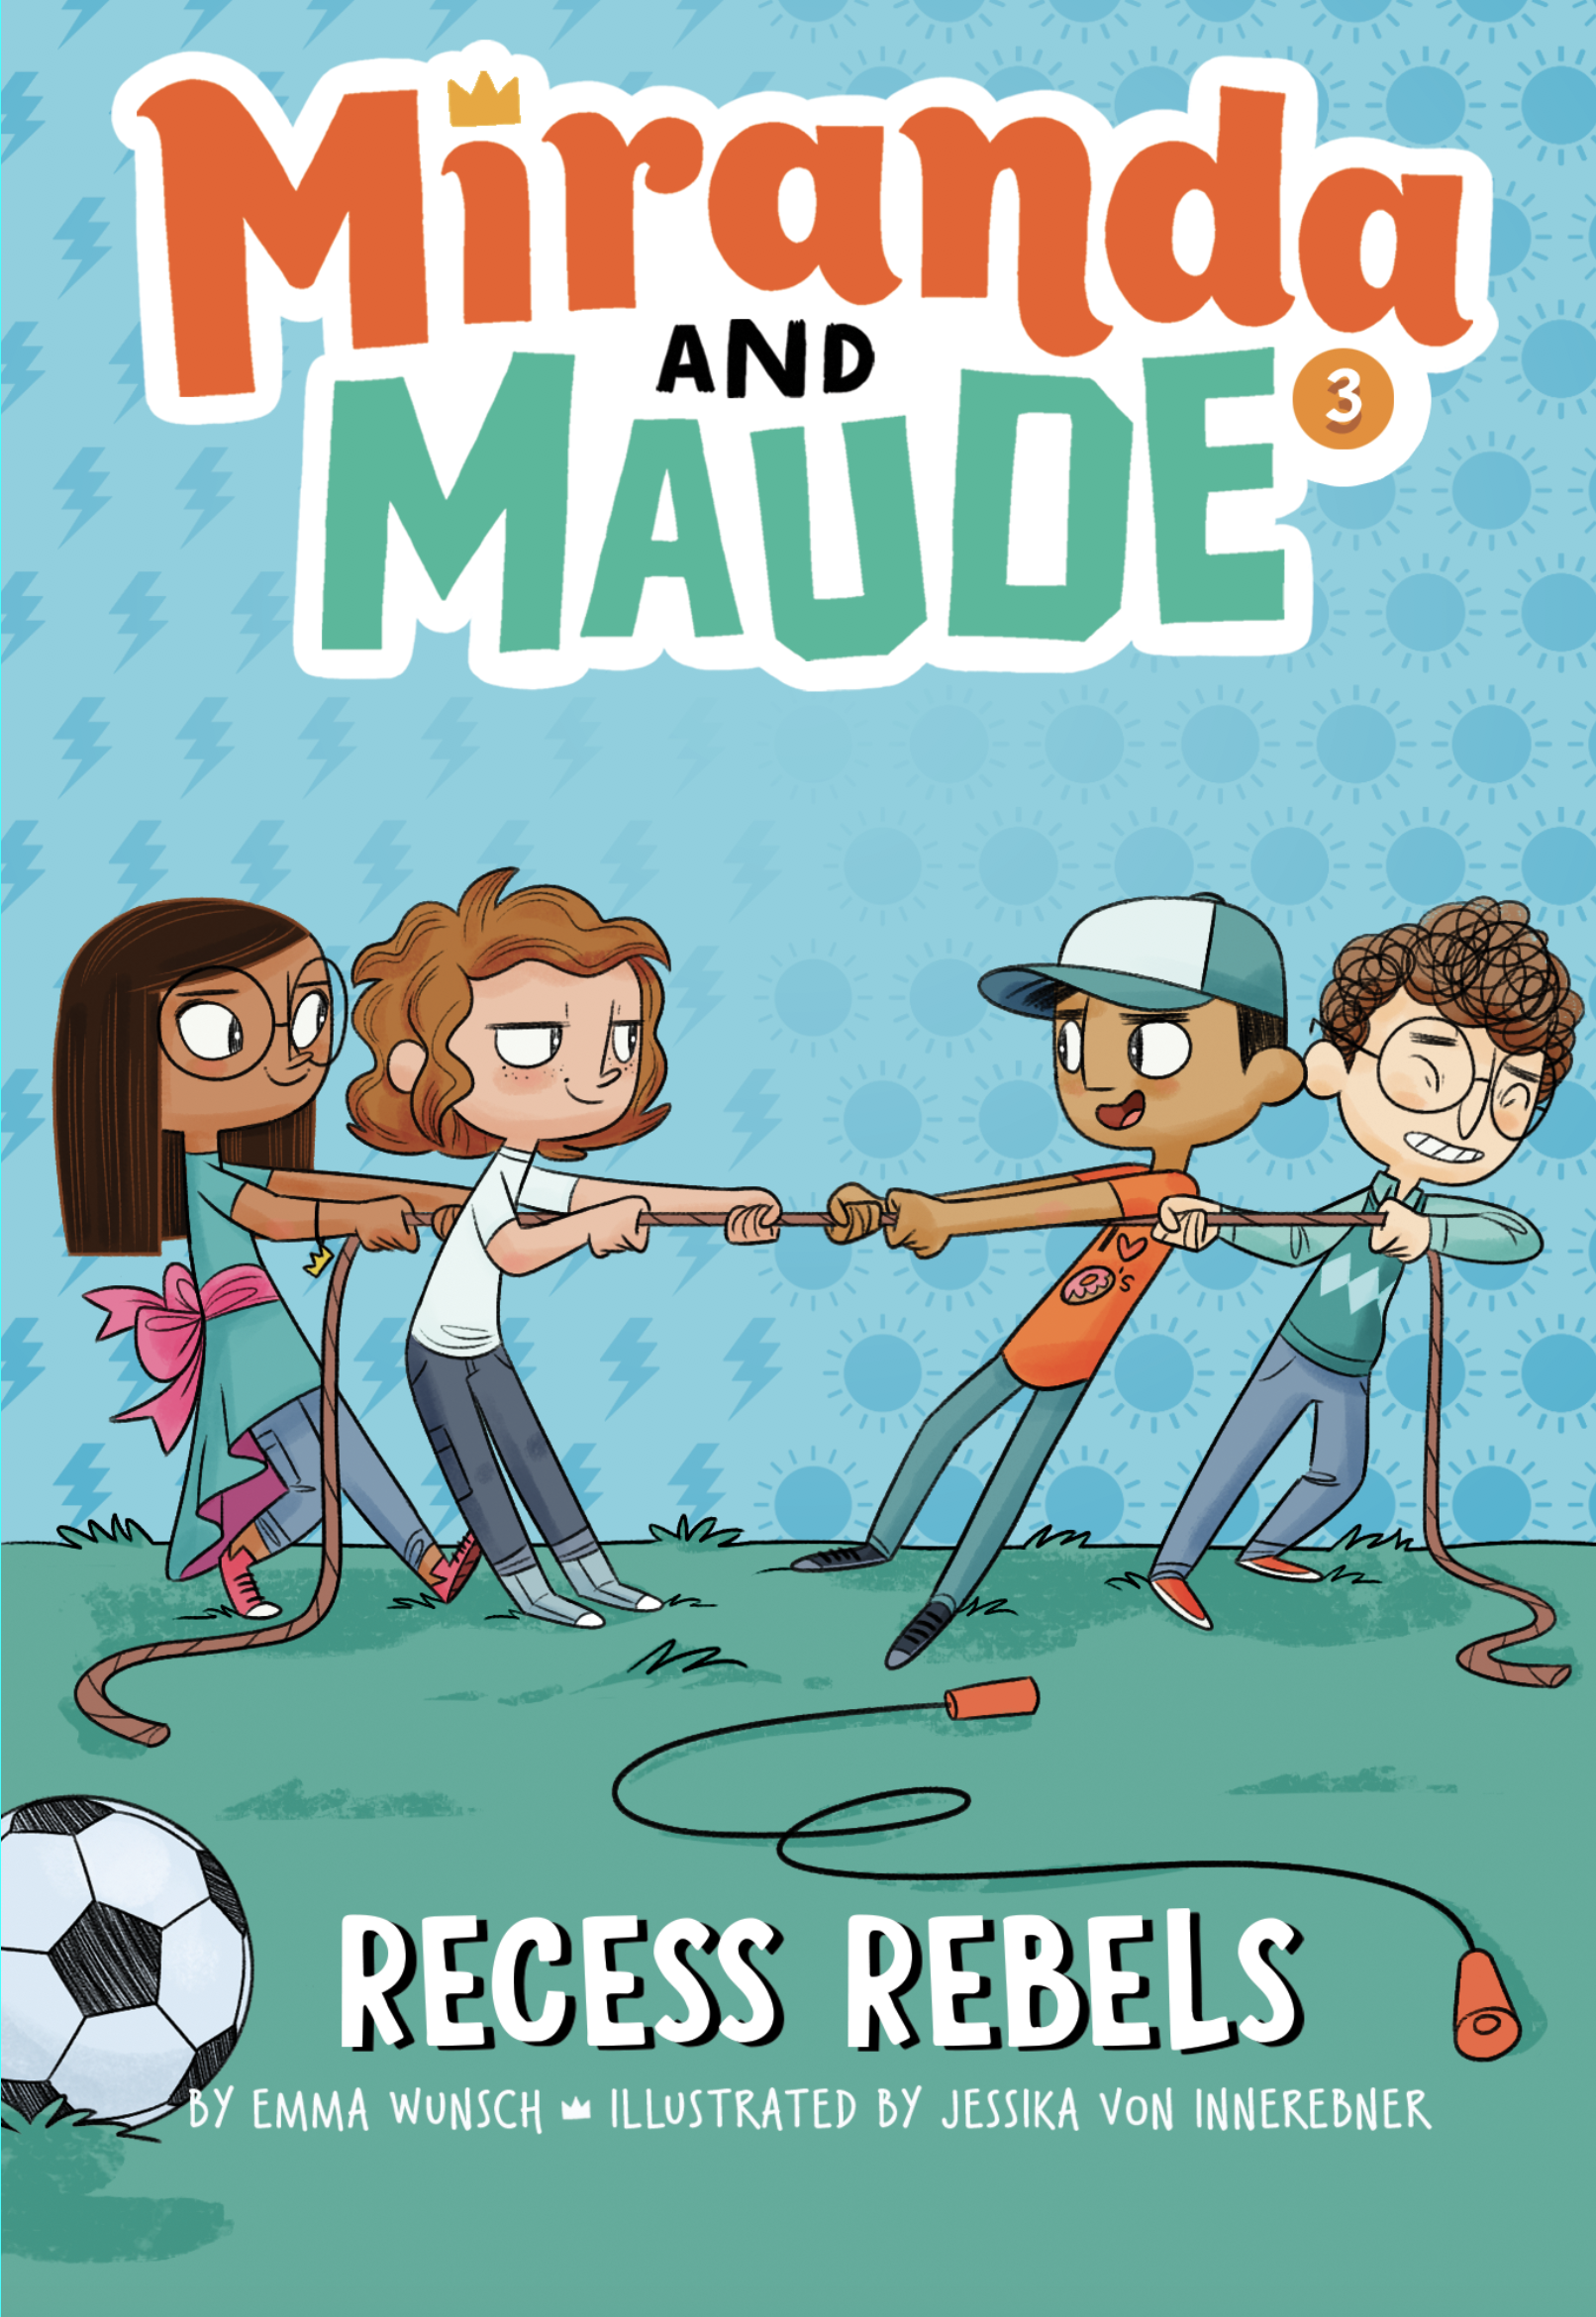 RECESS REBELS book 3 in the MIRANDA and MAUDE series is out now! - The girls and boys of 3B aren't getting along. It starts with a game of tag and ends with a tug of war. In between, there are sneak attacks, a girls-only newspaper, a doughnut filled with cheese, and one stolen Frizzle chicken. Maude gets lots of opportunities to protest, but in the end, it's Miranda who learns to stand up for what she believes in.Order your copy today! Signed copies available from my local indie Norwich books.